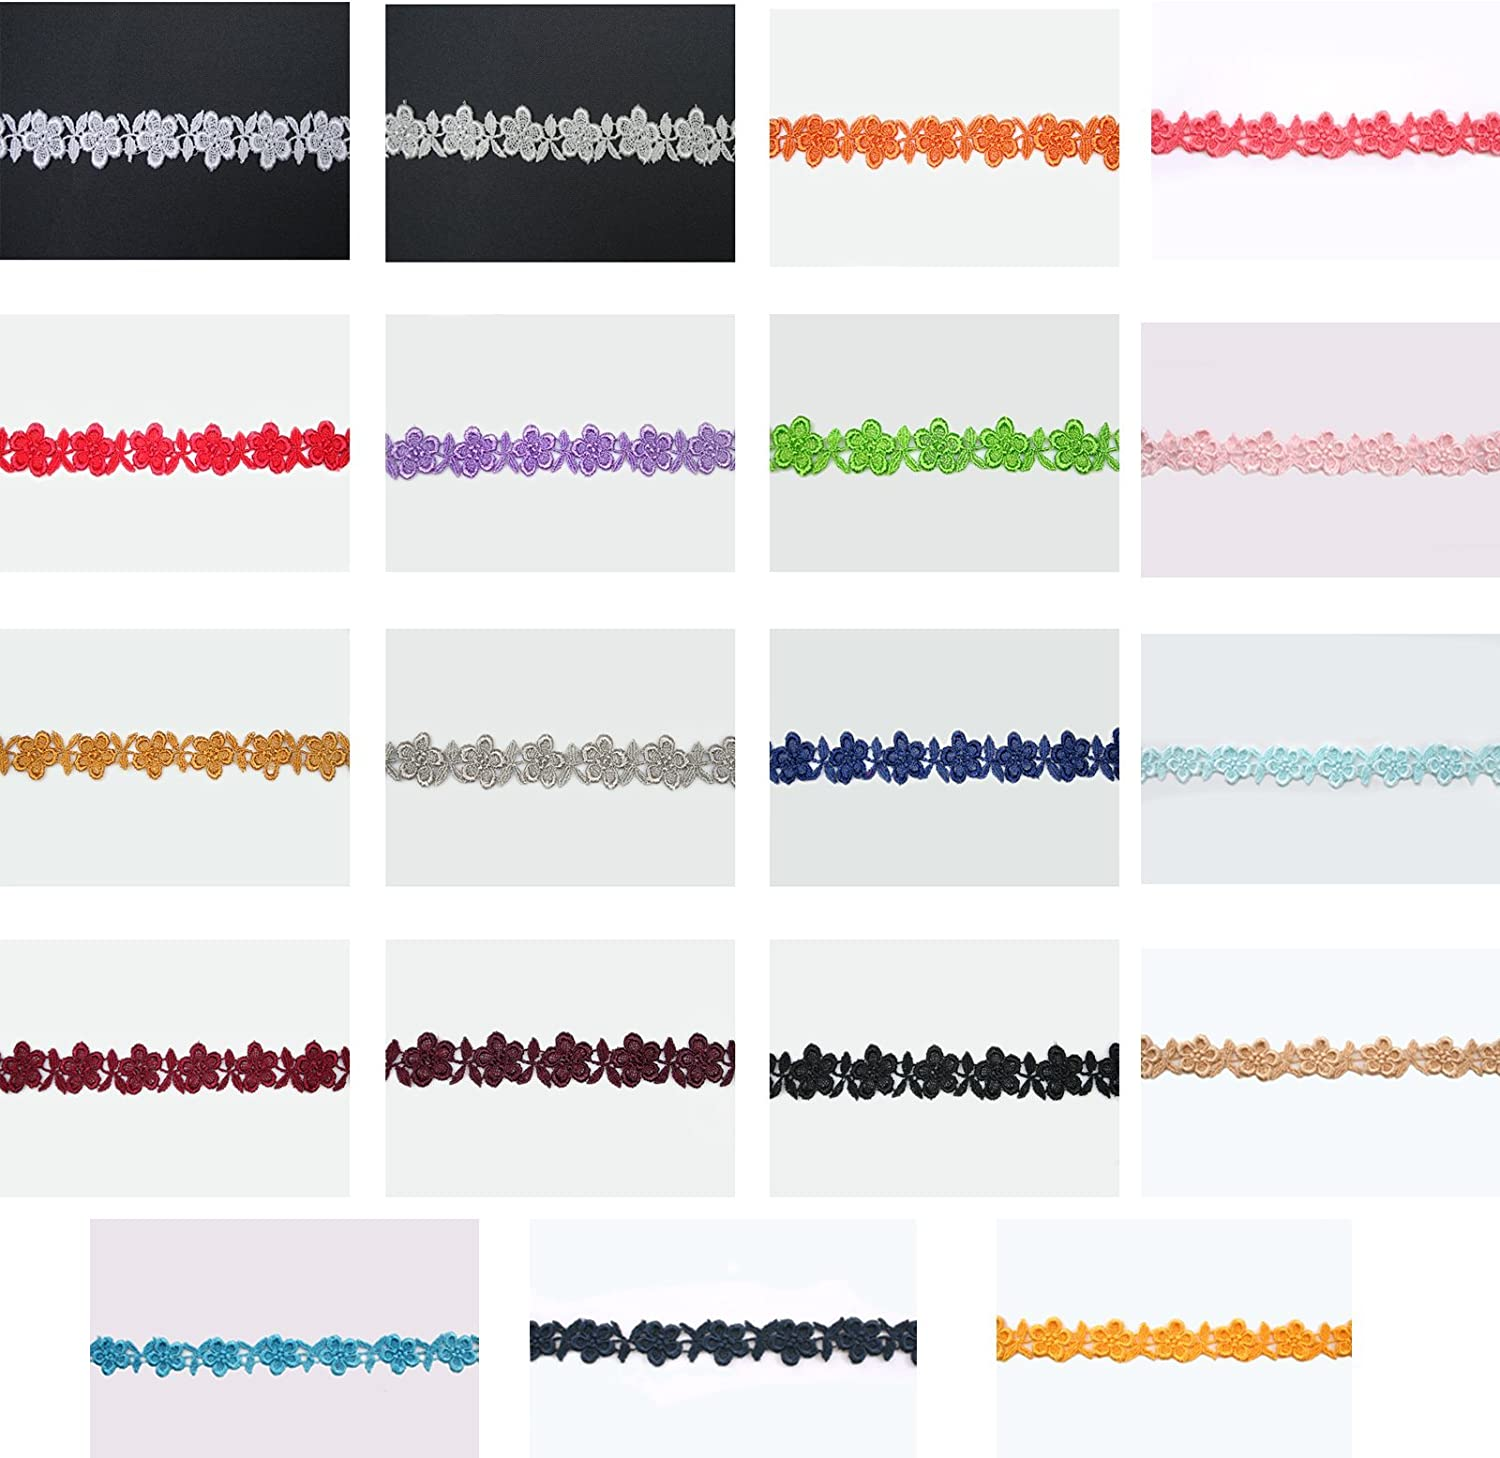 Navy Altotux 3//4 19 Colors Small Floral Embroidered Venice Lace Trim Guipure By 2 Yards